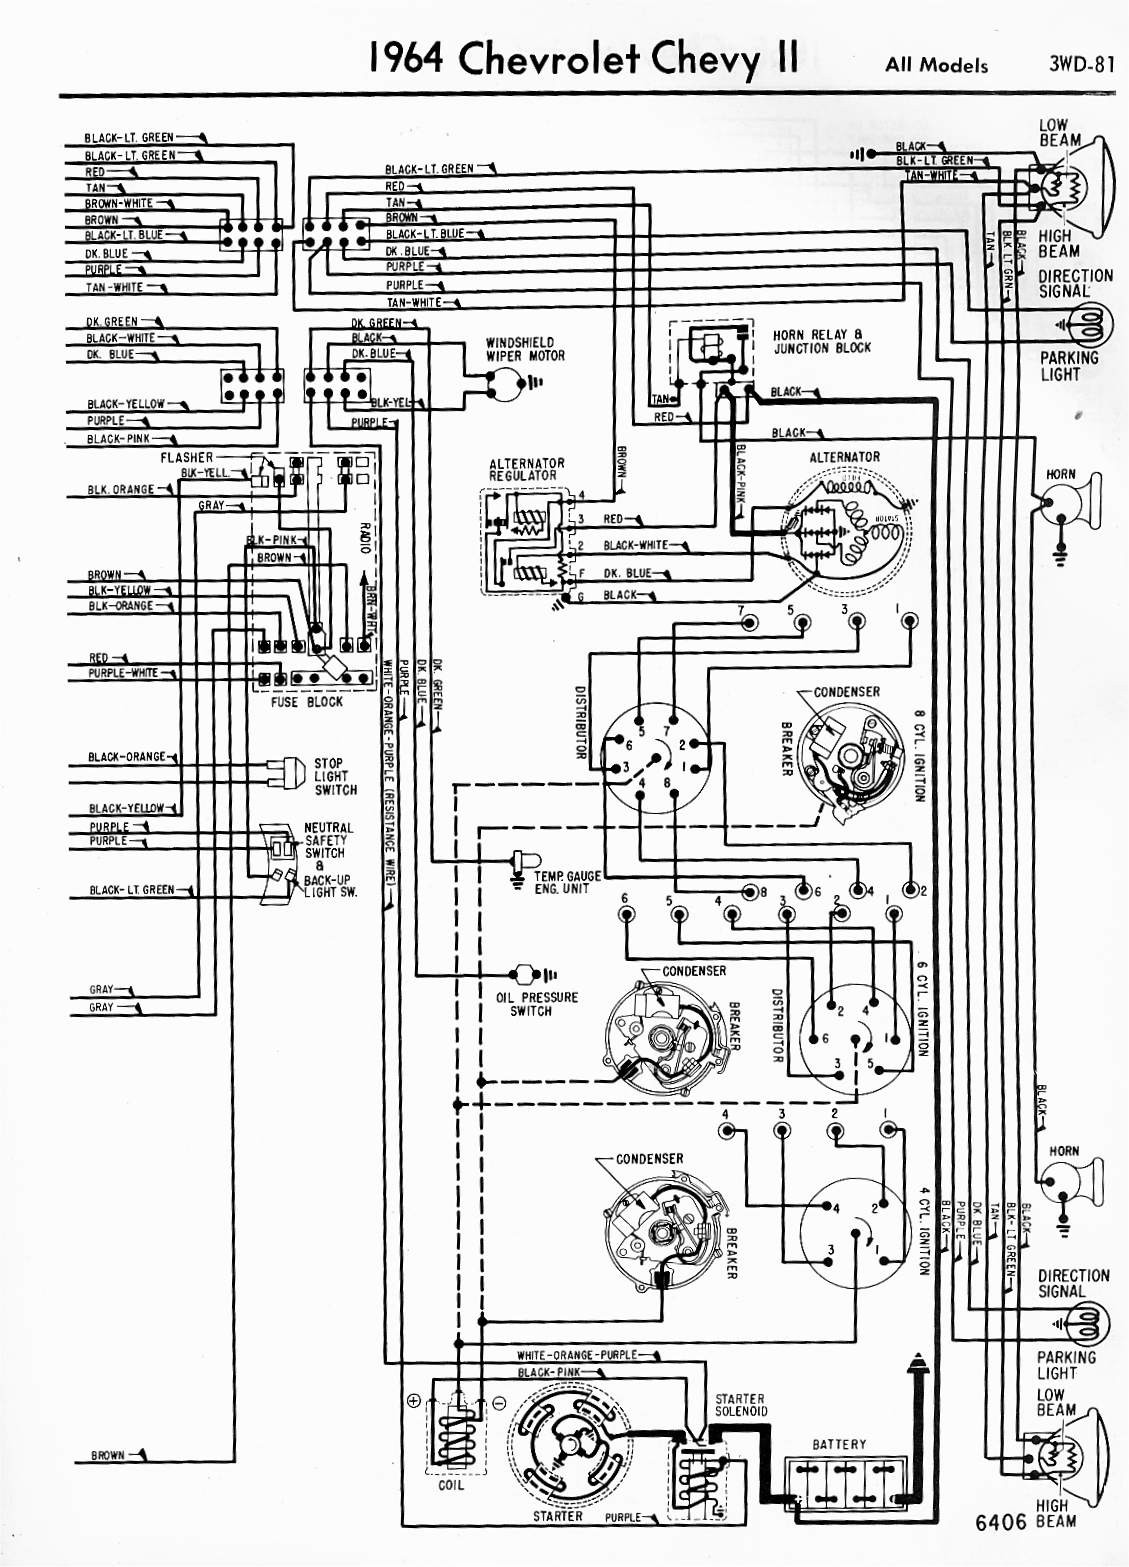 72 Chevy Truck Wiring Diagram New Image Fuse 1964 Ii All Models Right